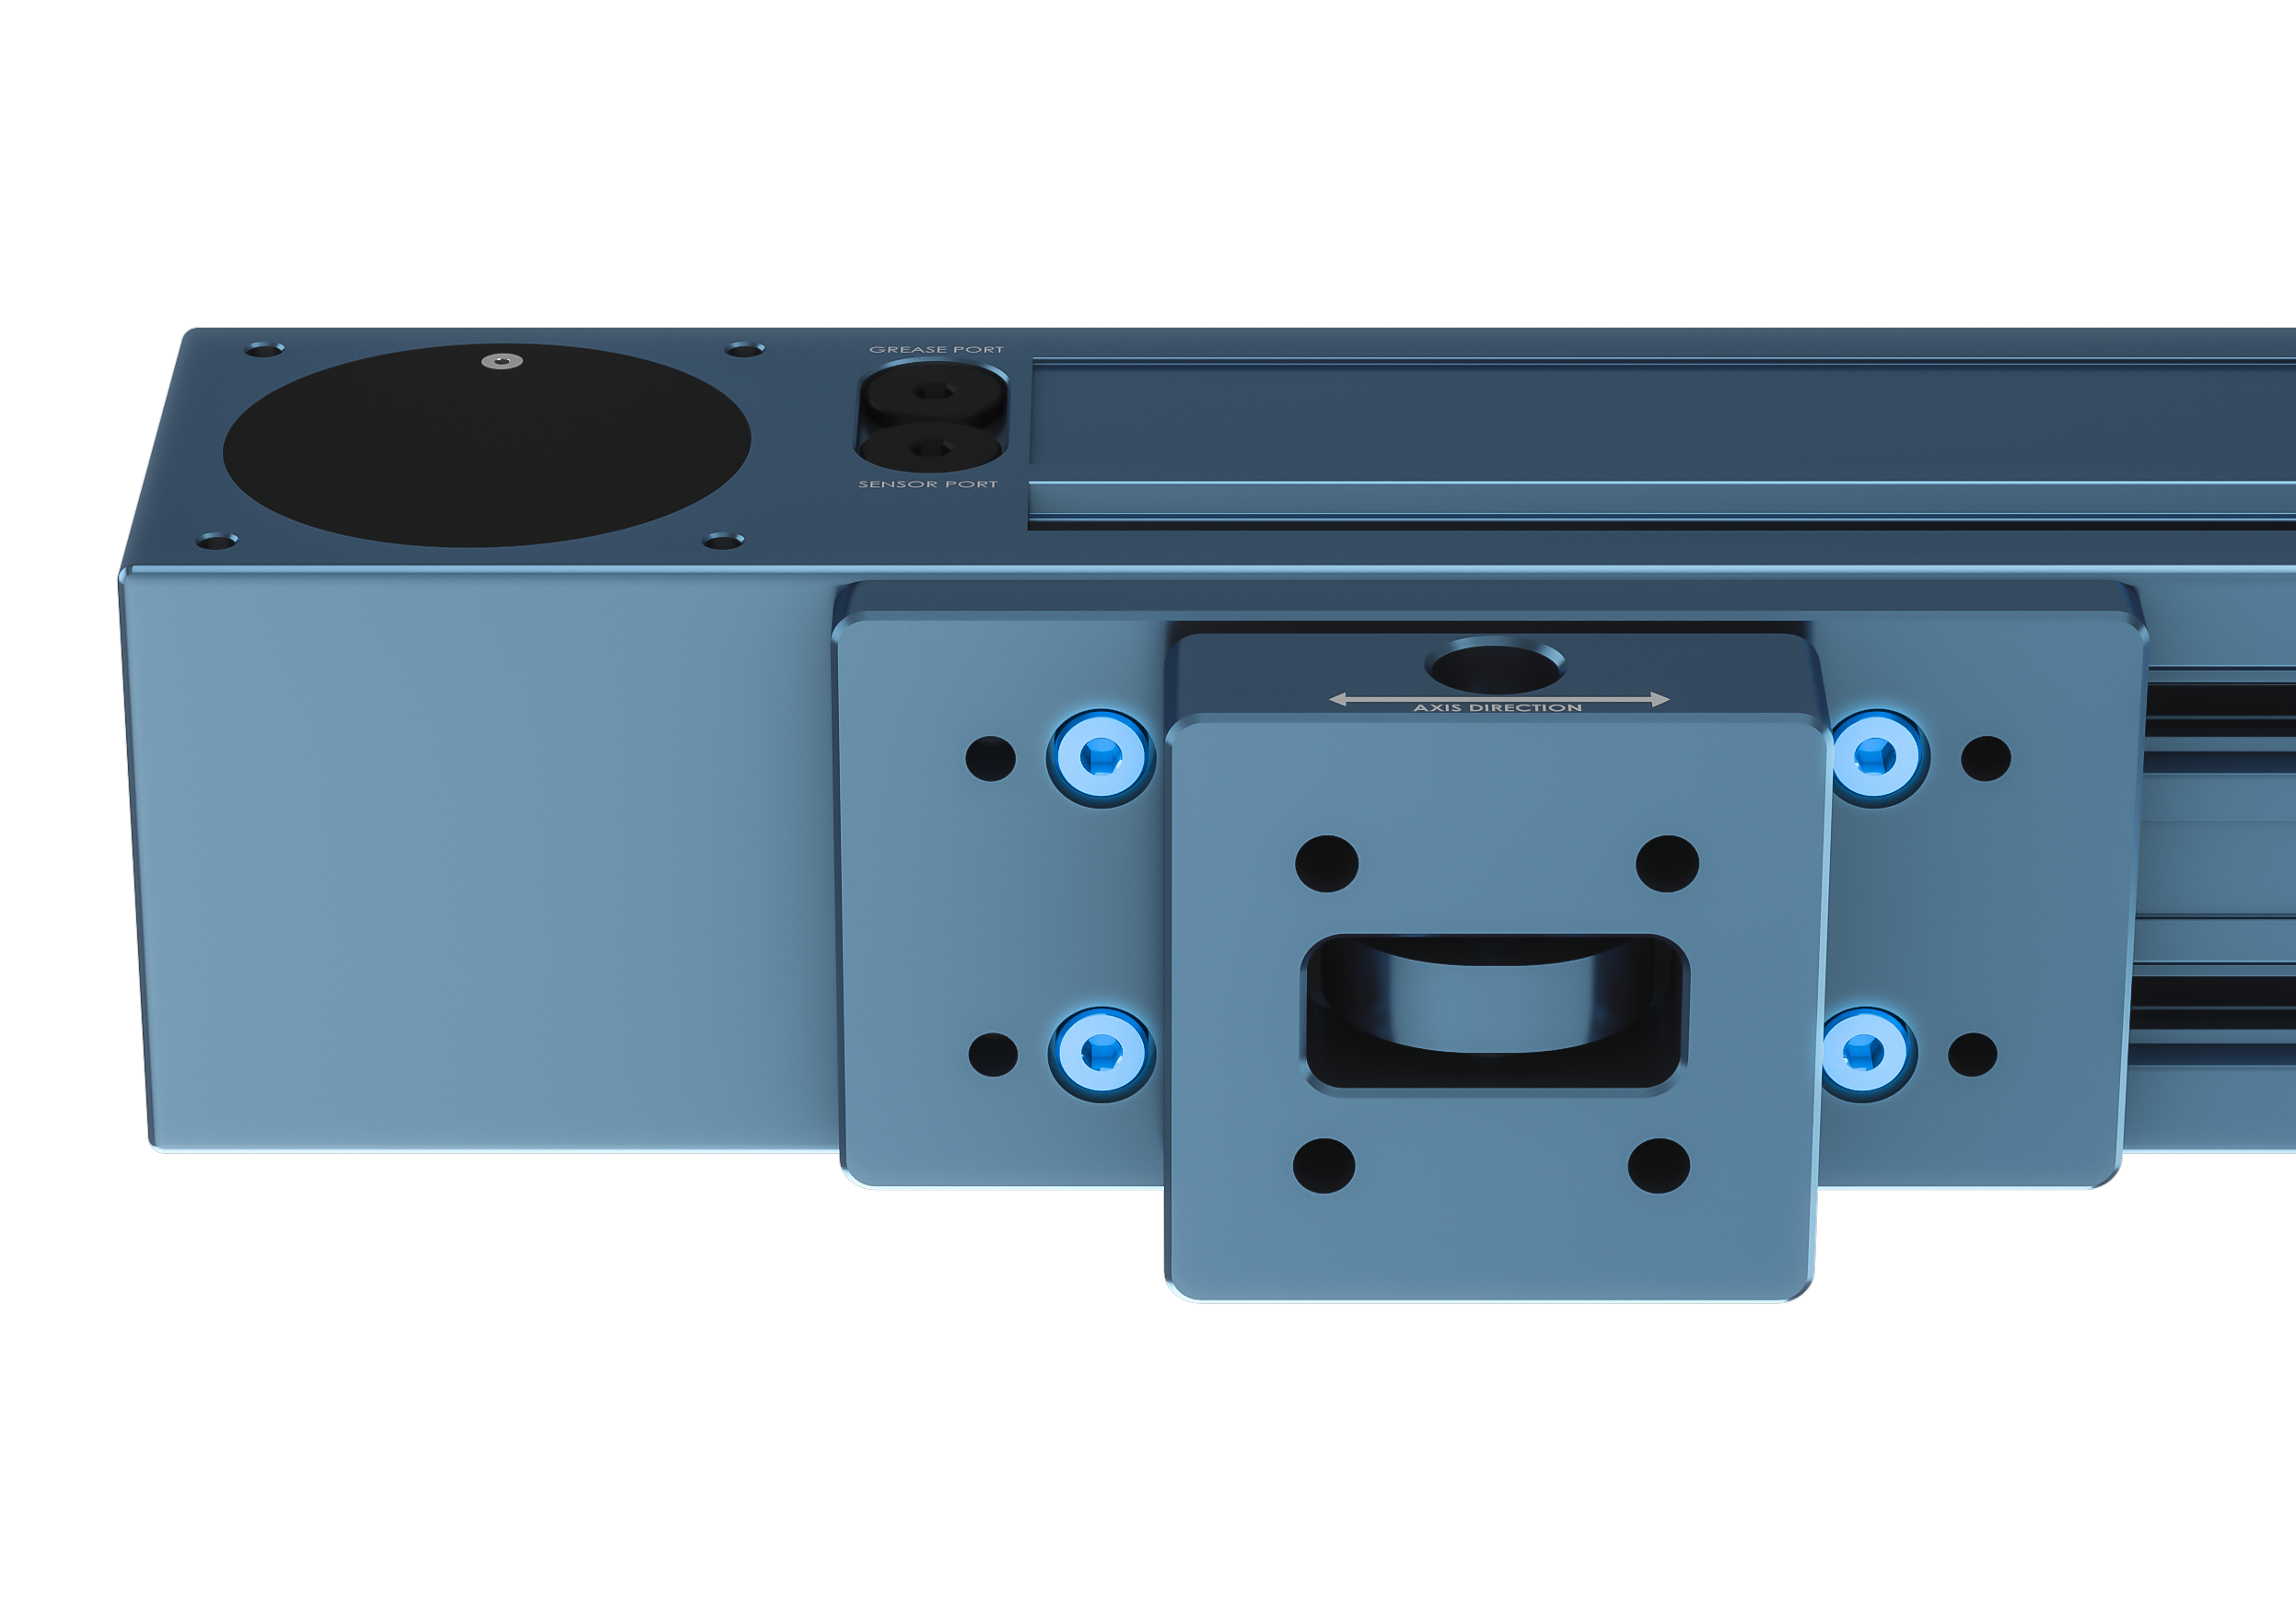 Figure 10: Close-up view of the mount attached directly to the actuator via t-slots.